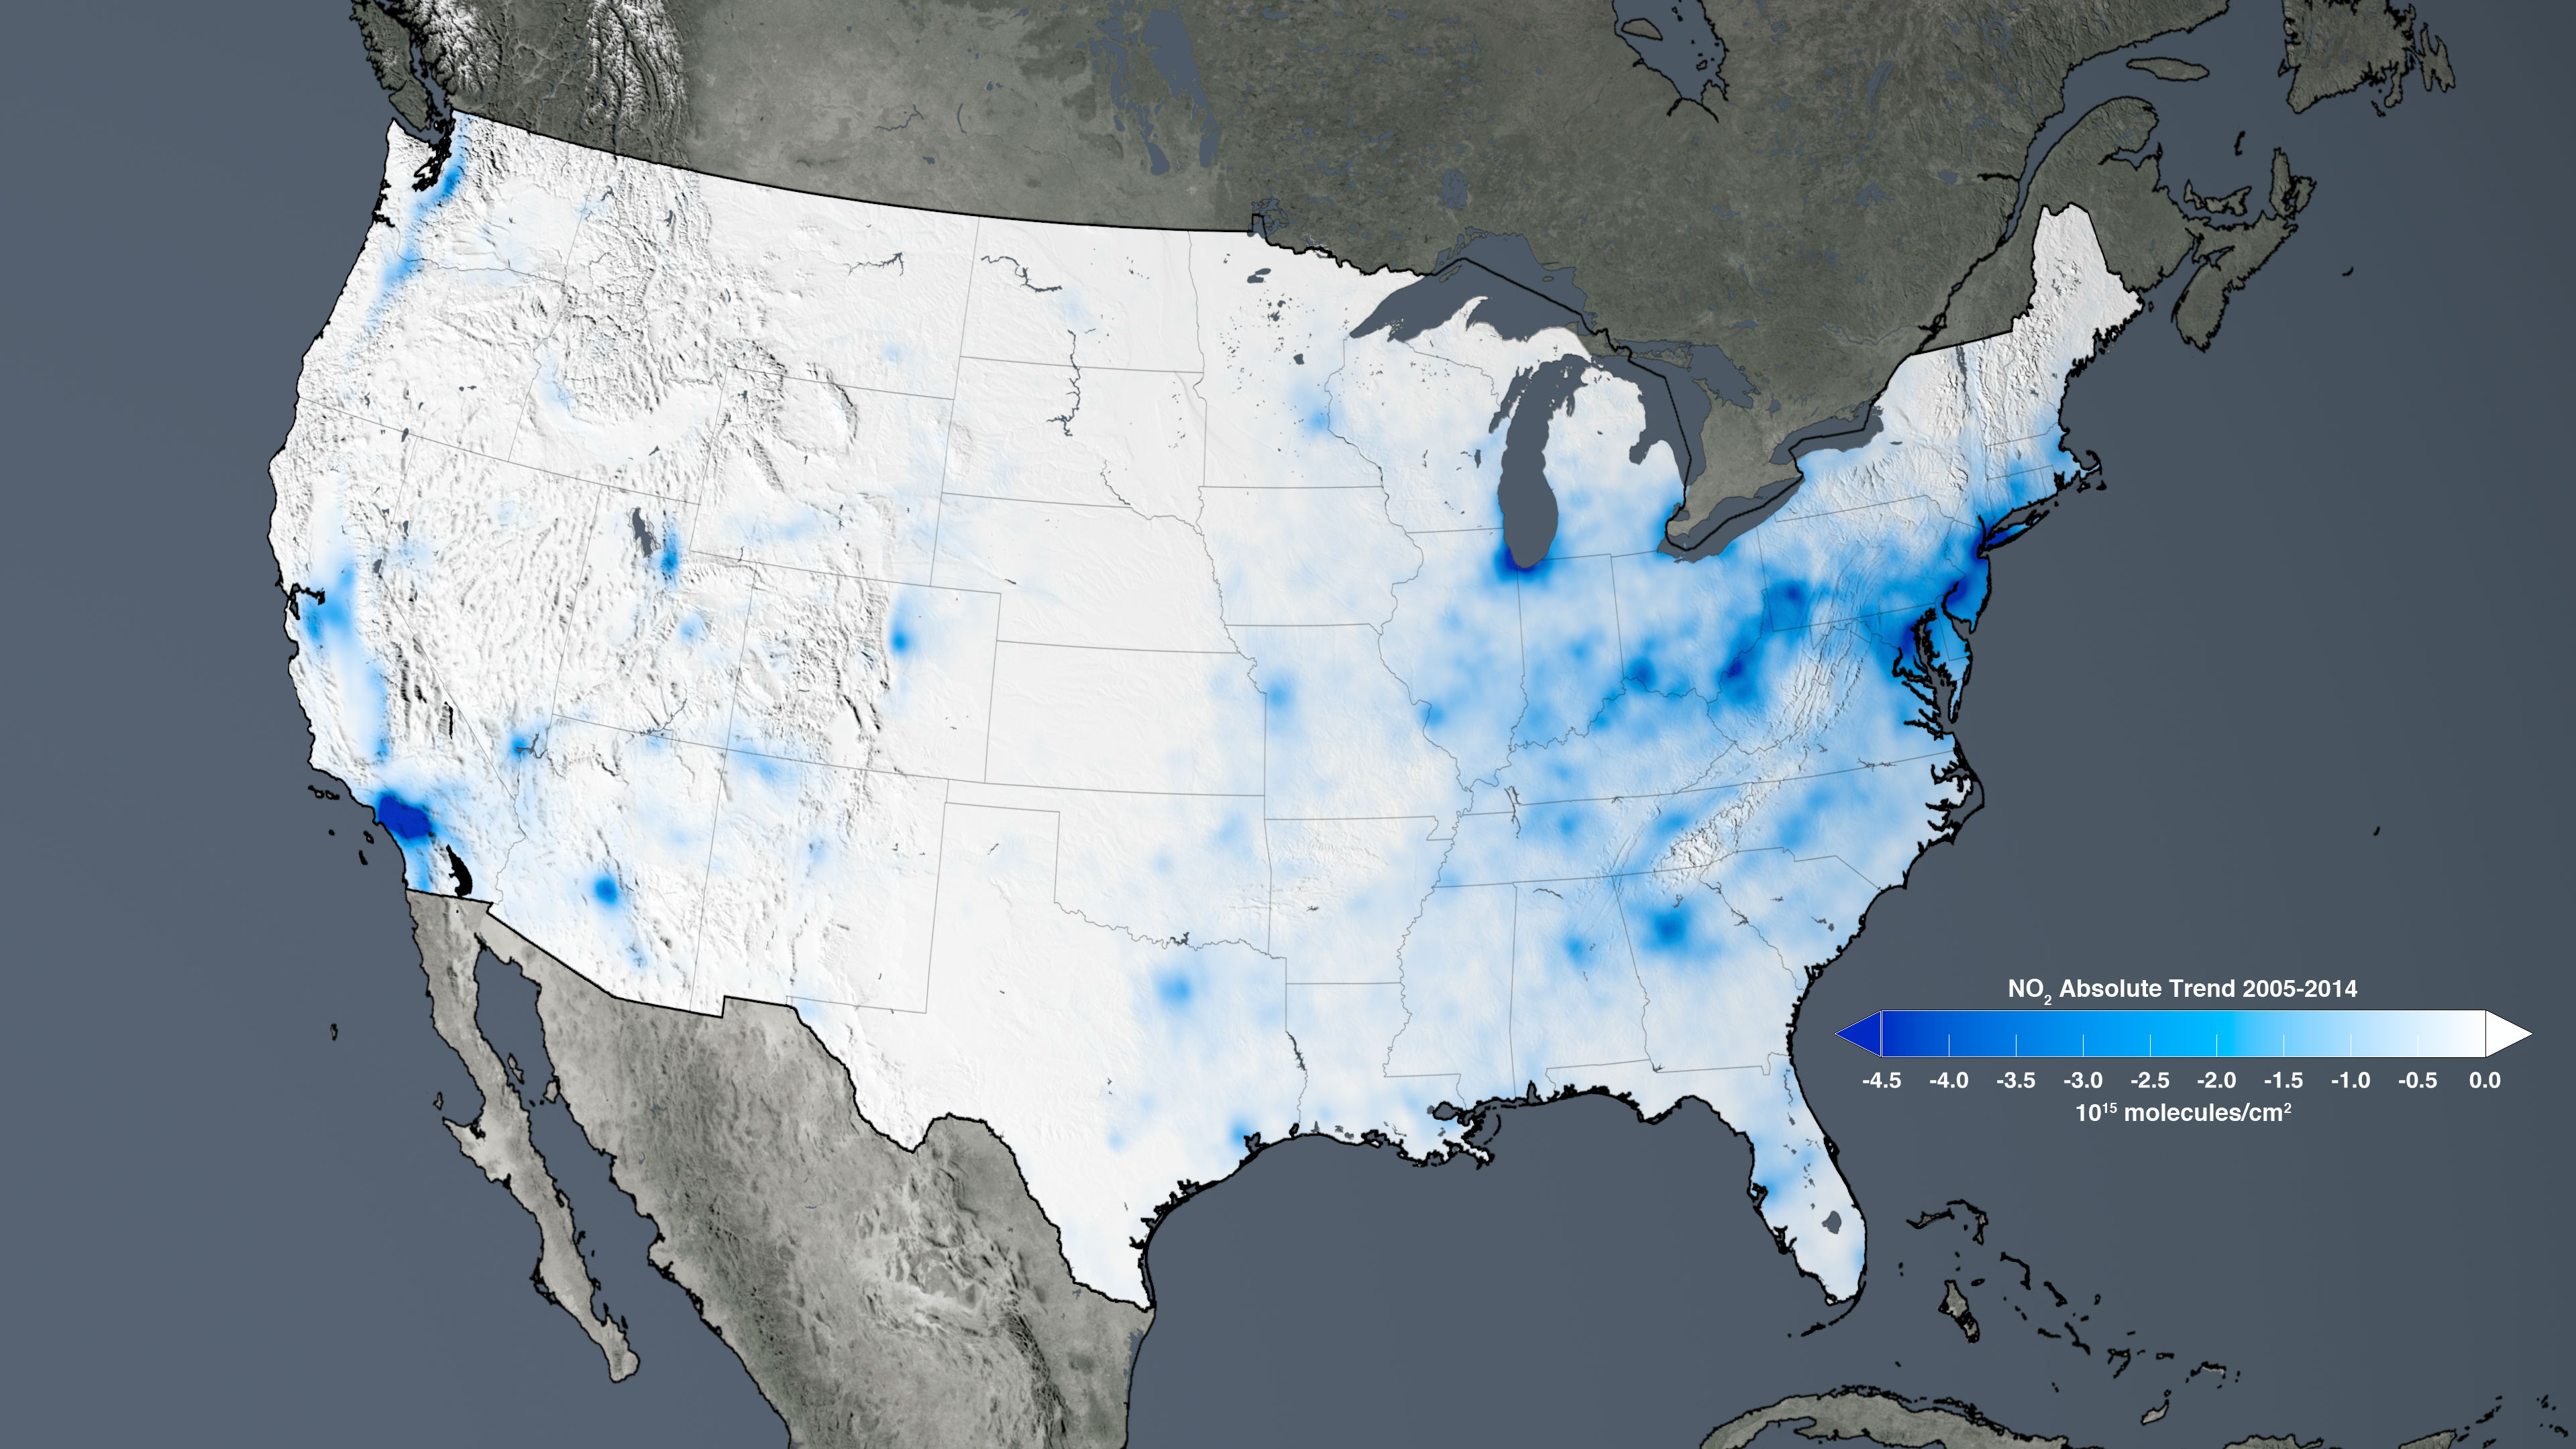 North American Eca Map%0A The trend map of the United States shows the large decreases in nitrogen  dioxide concentrations tied